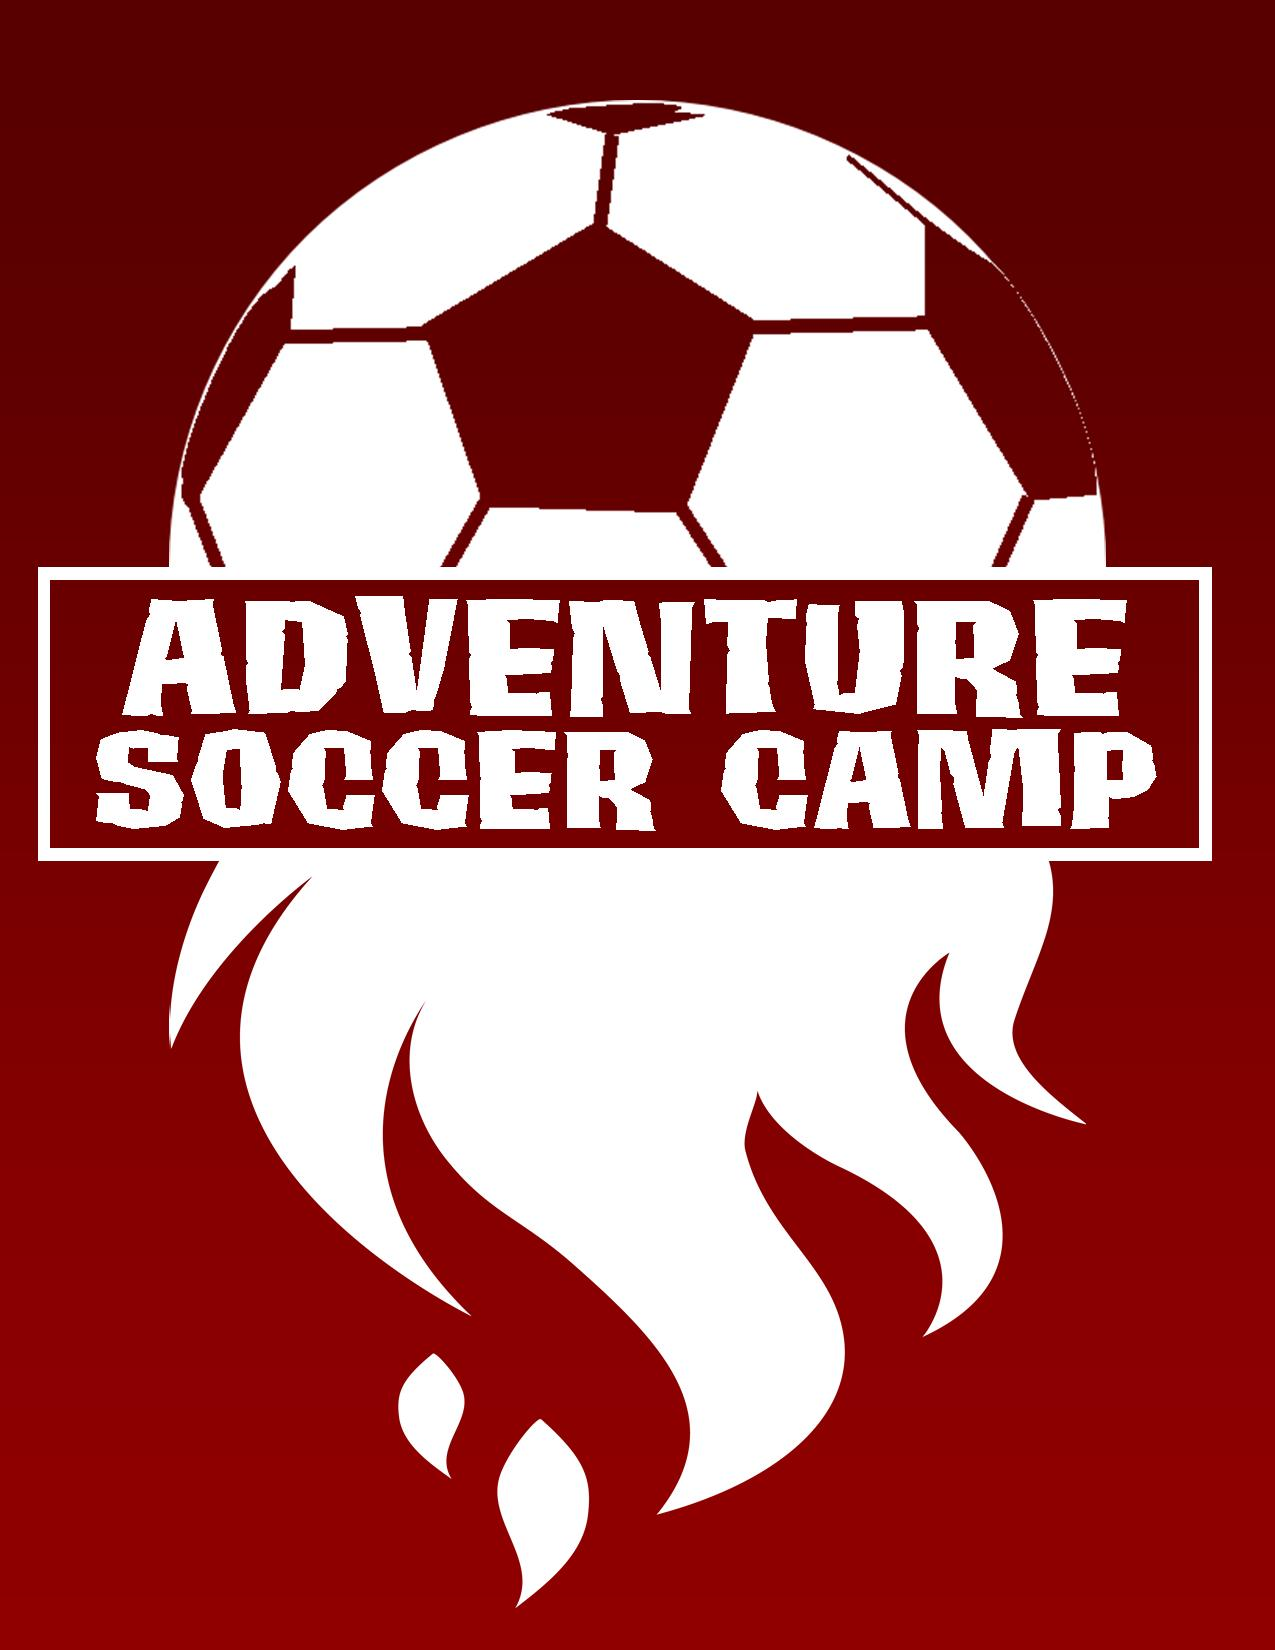 Adventure soccer camp image